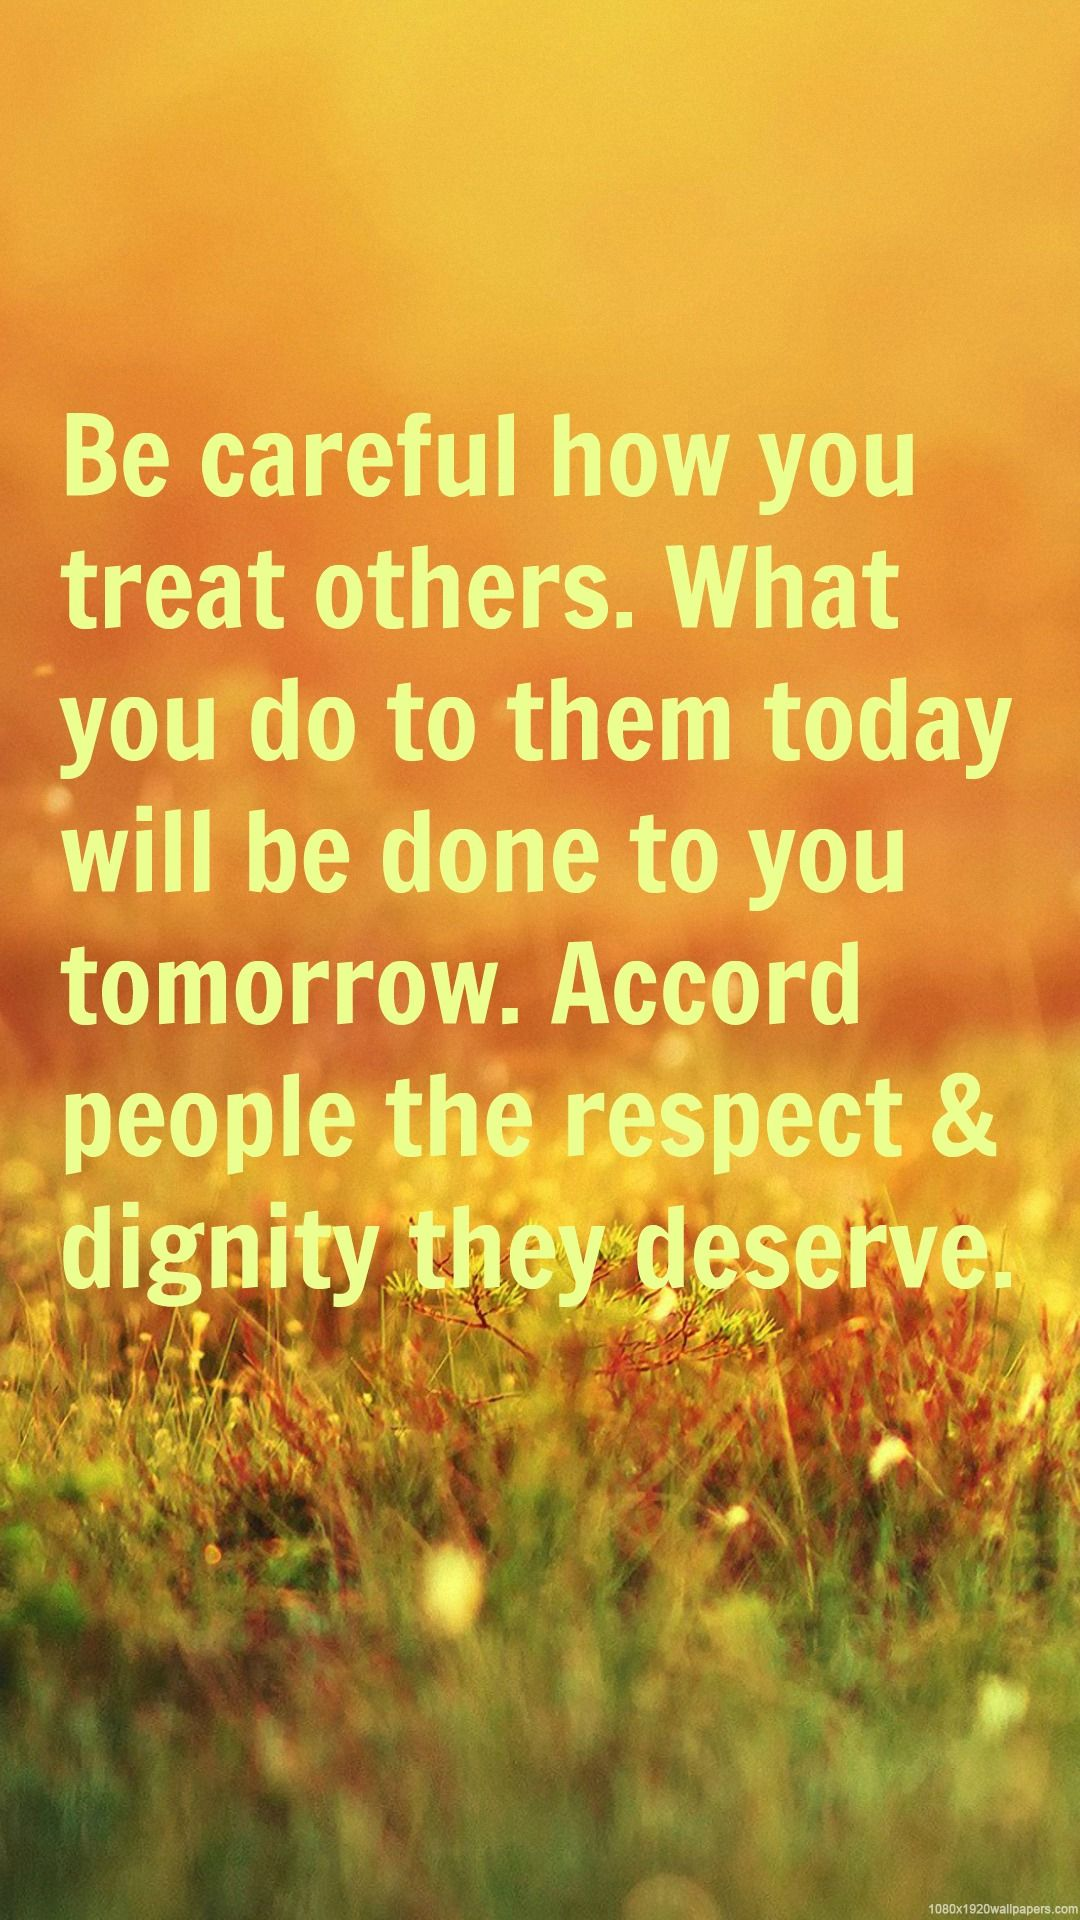 Be Careful How You Treat People Quotes : careful, treat, people, quotes, Careful, Treat, Others., Today, Tomorrow., Accord, People, The…, Others, Quotes,, Respect, Meaningful, Quotes